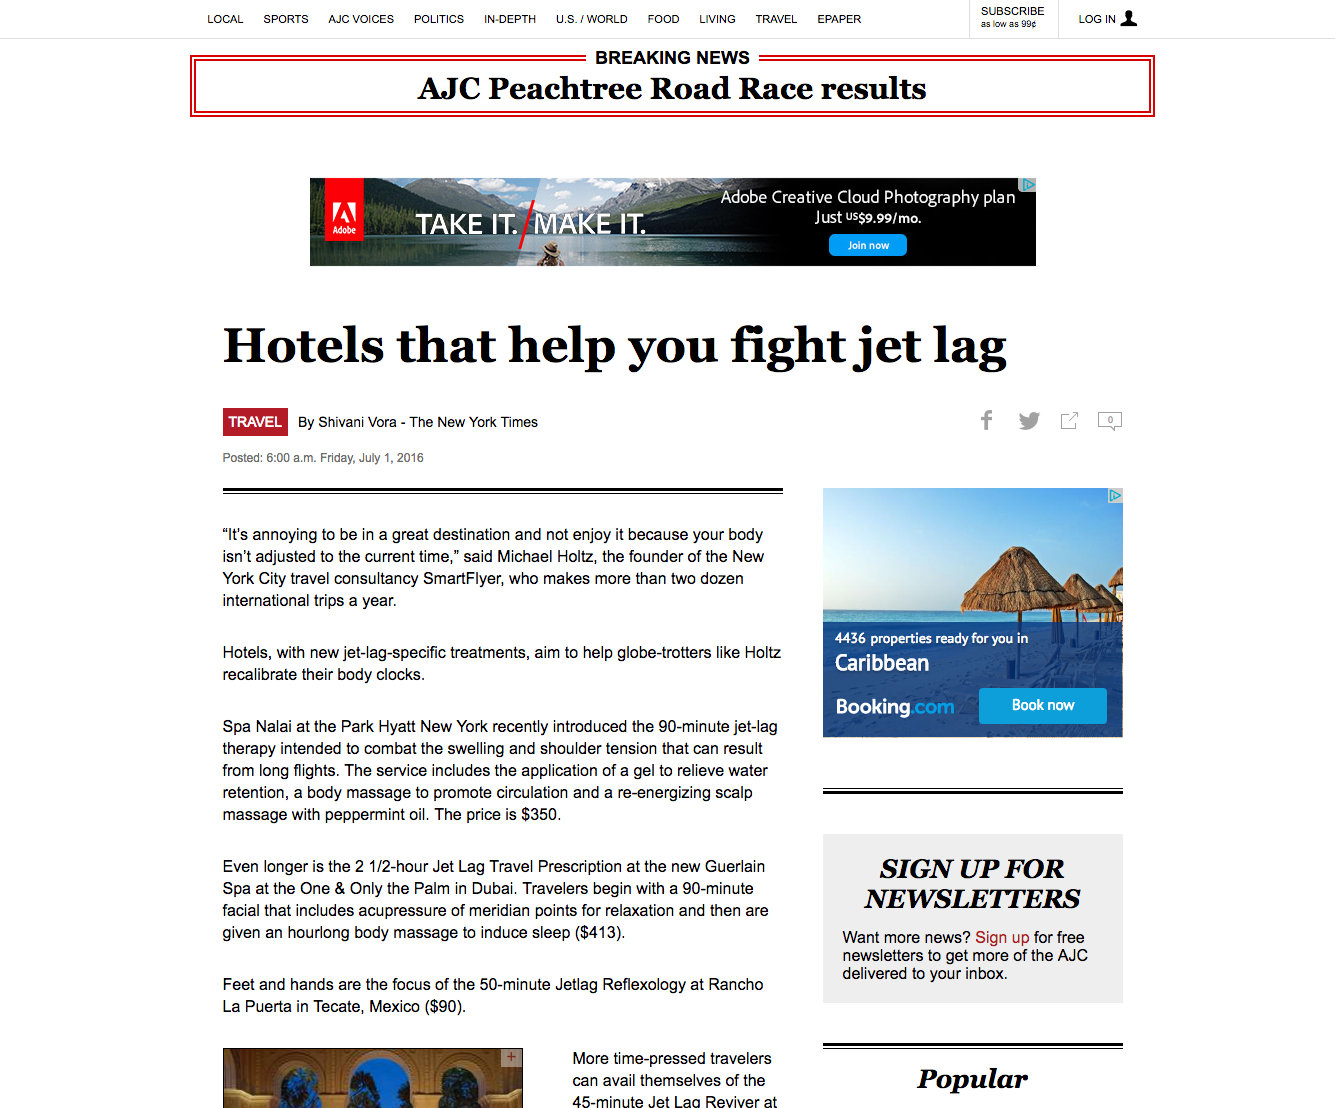 ATLANTA JOURNAL CONSTITUTION / TRAVEL  Section